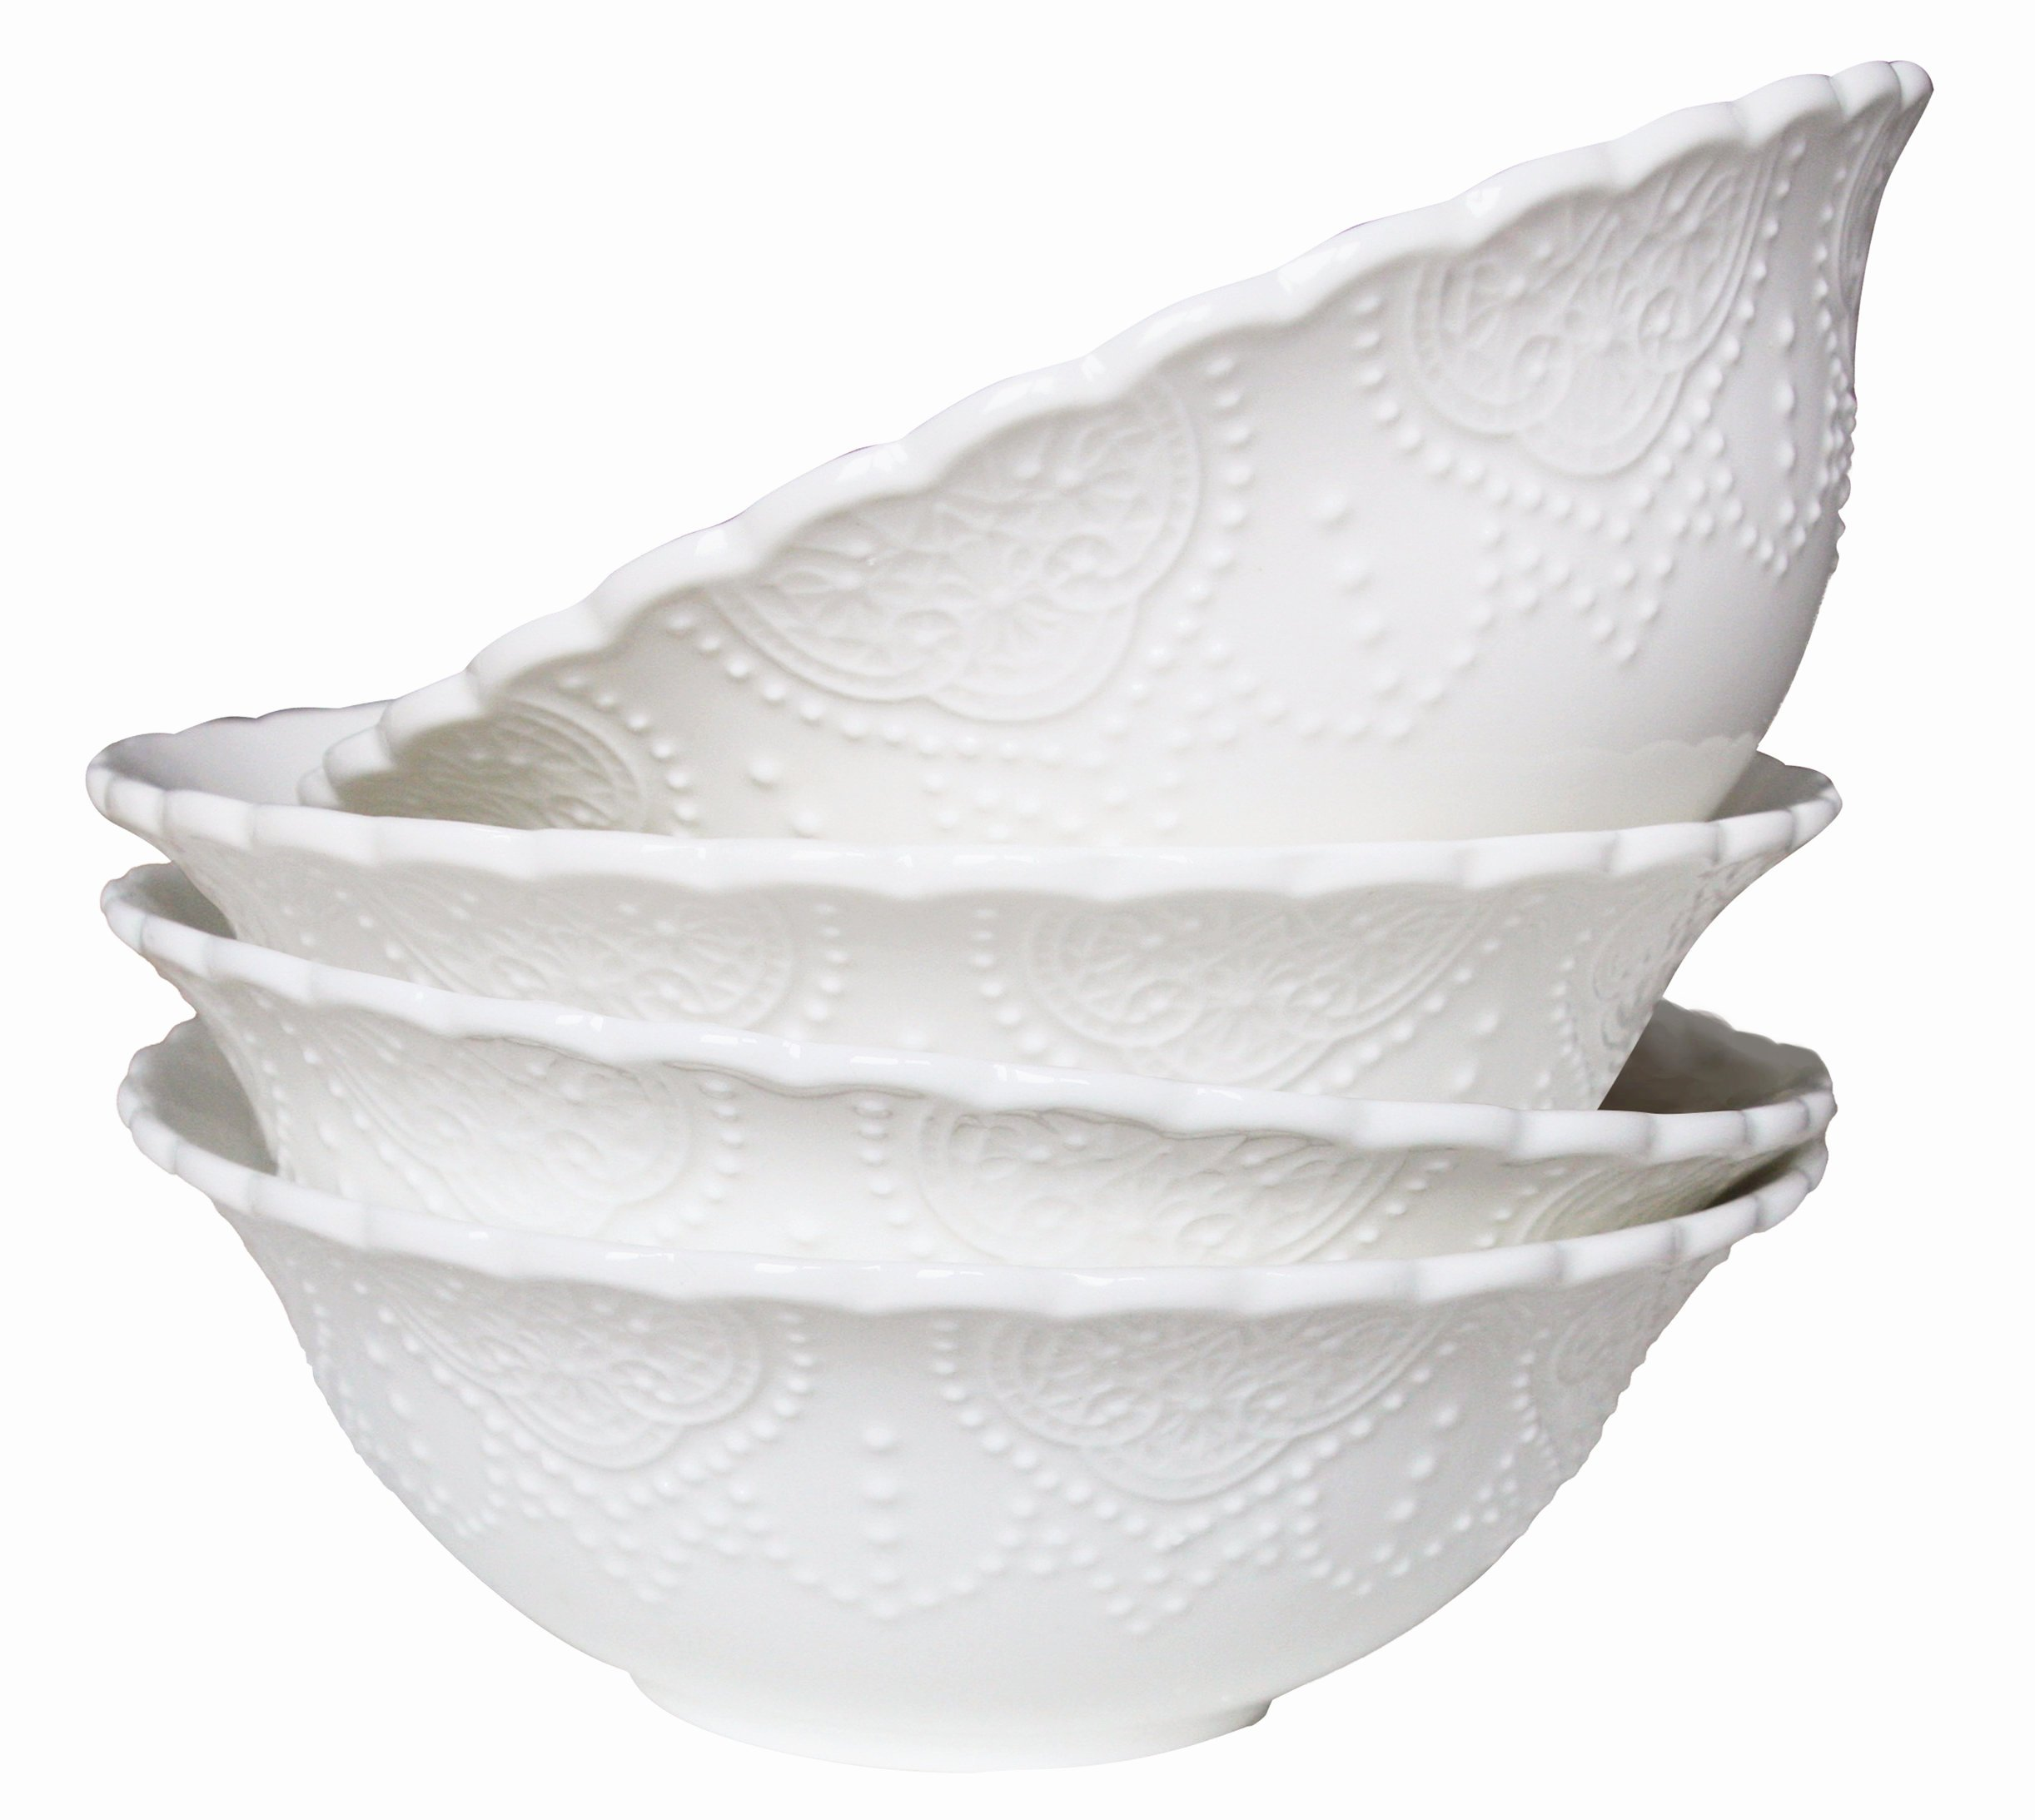 Cereal Soup Bowls Set 4 New Bone China, Scalloped Embossed Pattern, 15 Ounce Each, White